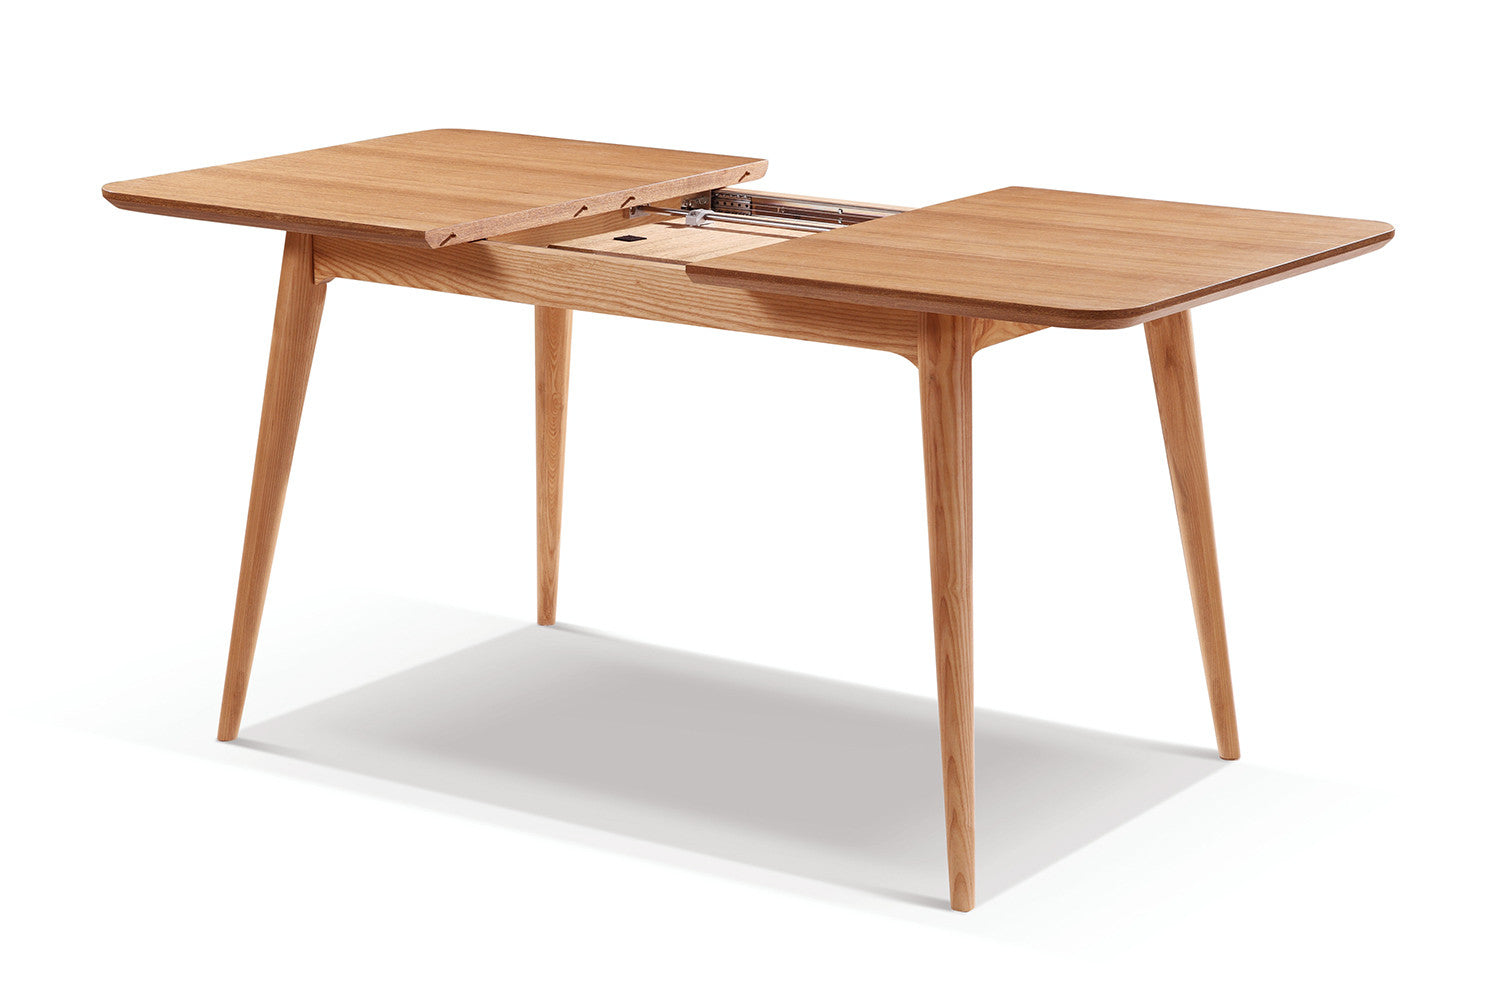 Table salle a manger extensible en bois maison design for Table de salle a manger flamant